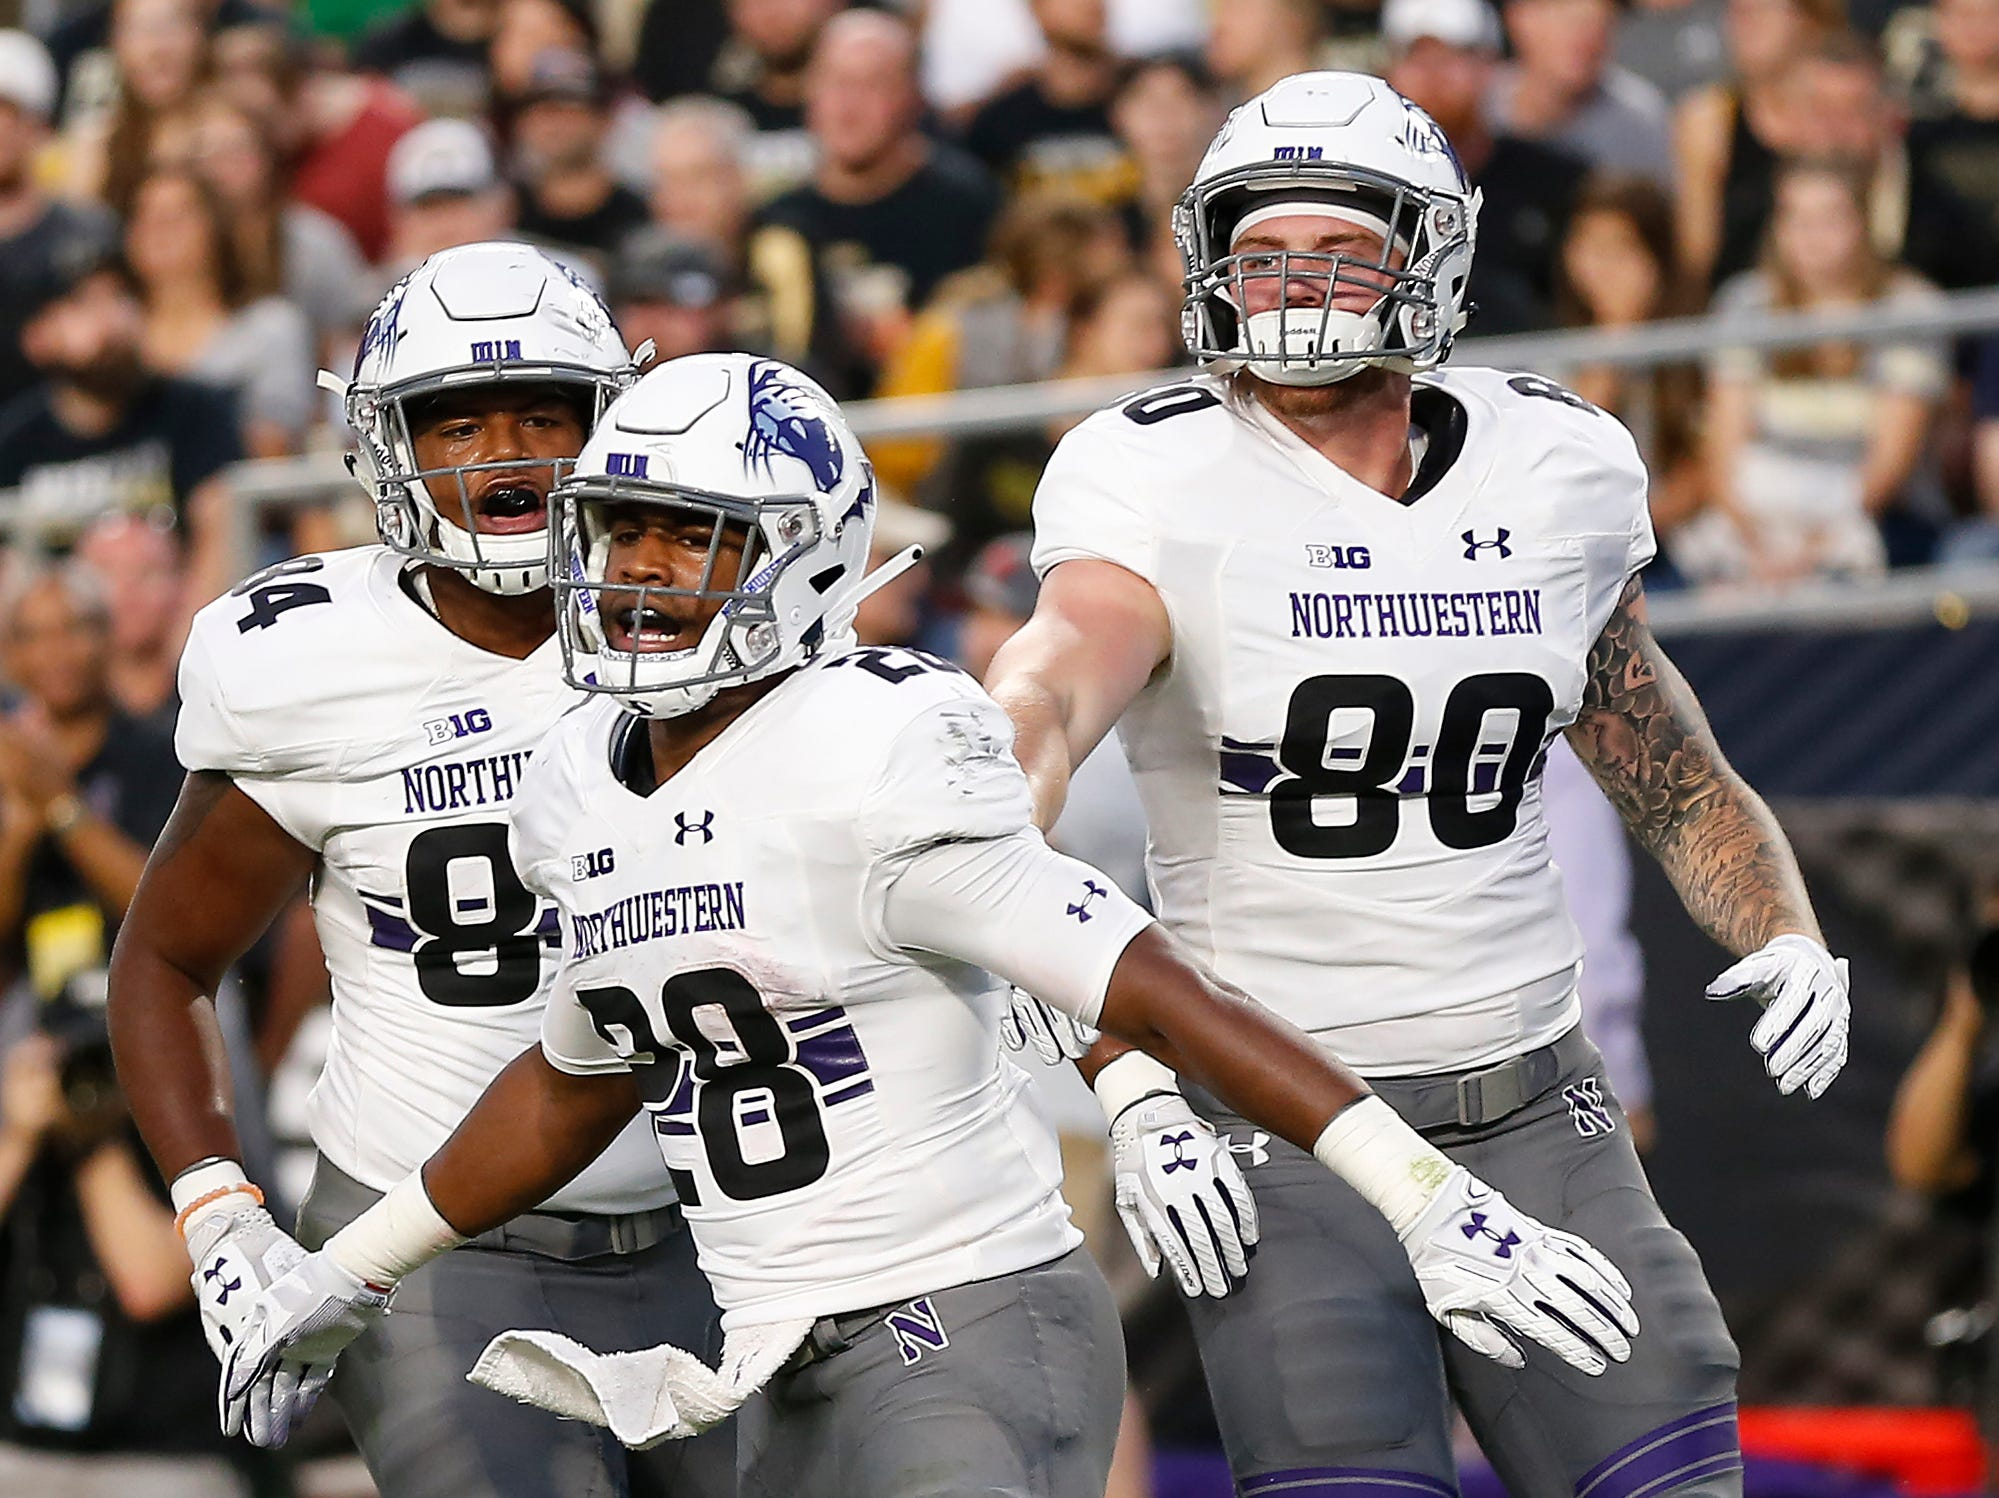 Jeremy Larkin of Northwestern (28) celebrates with teammates Cameron Green (84) and Trey Pugh (80) after his rushing touchdown at 7:58 in the first quarter against Purdue Thursday, August 30, 2018, in West Lafayette.